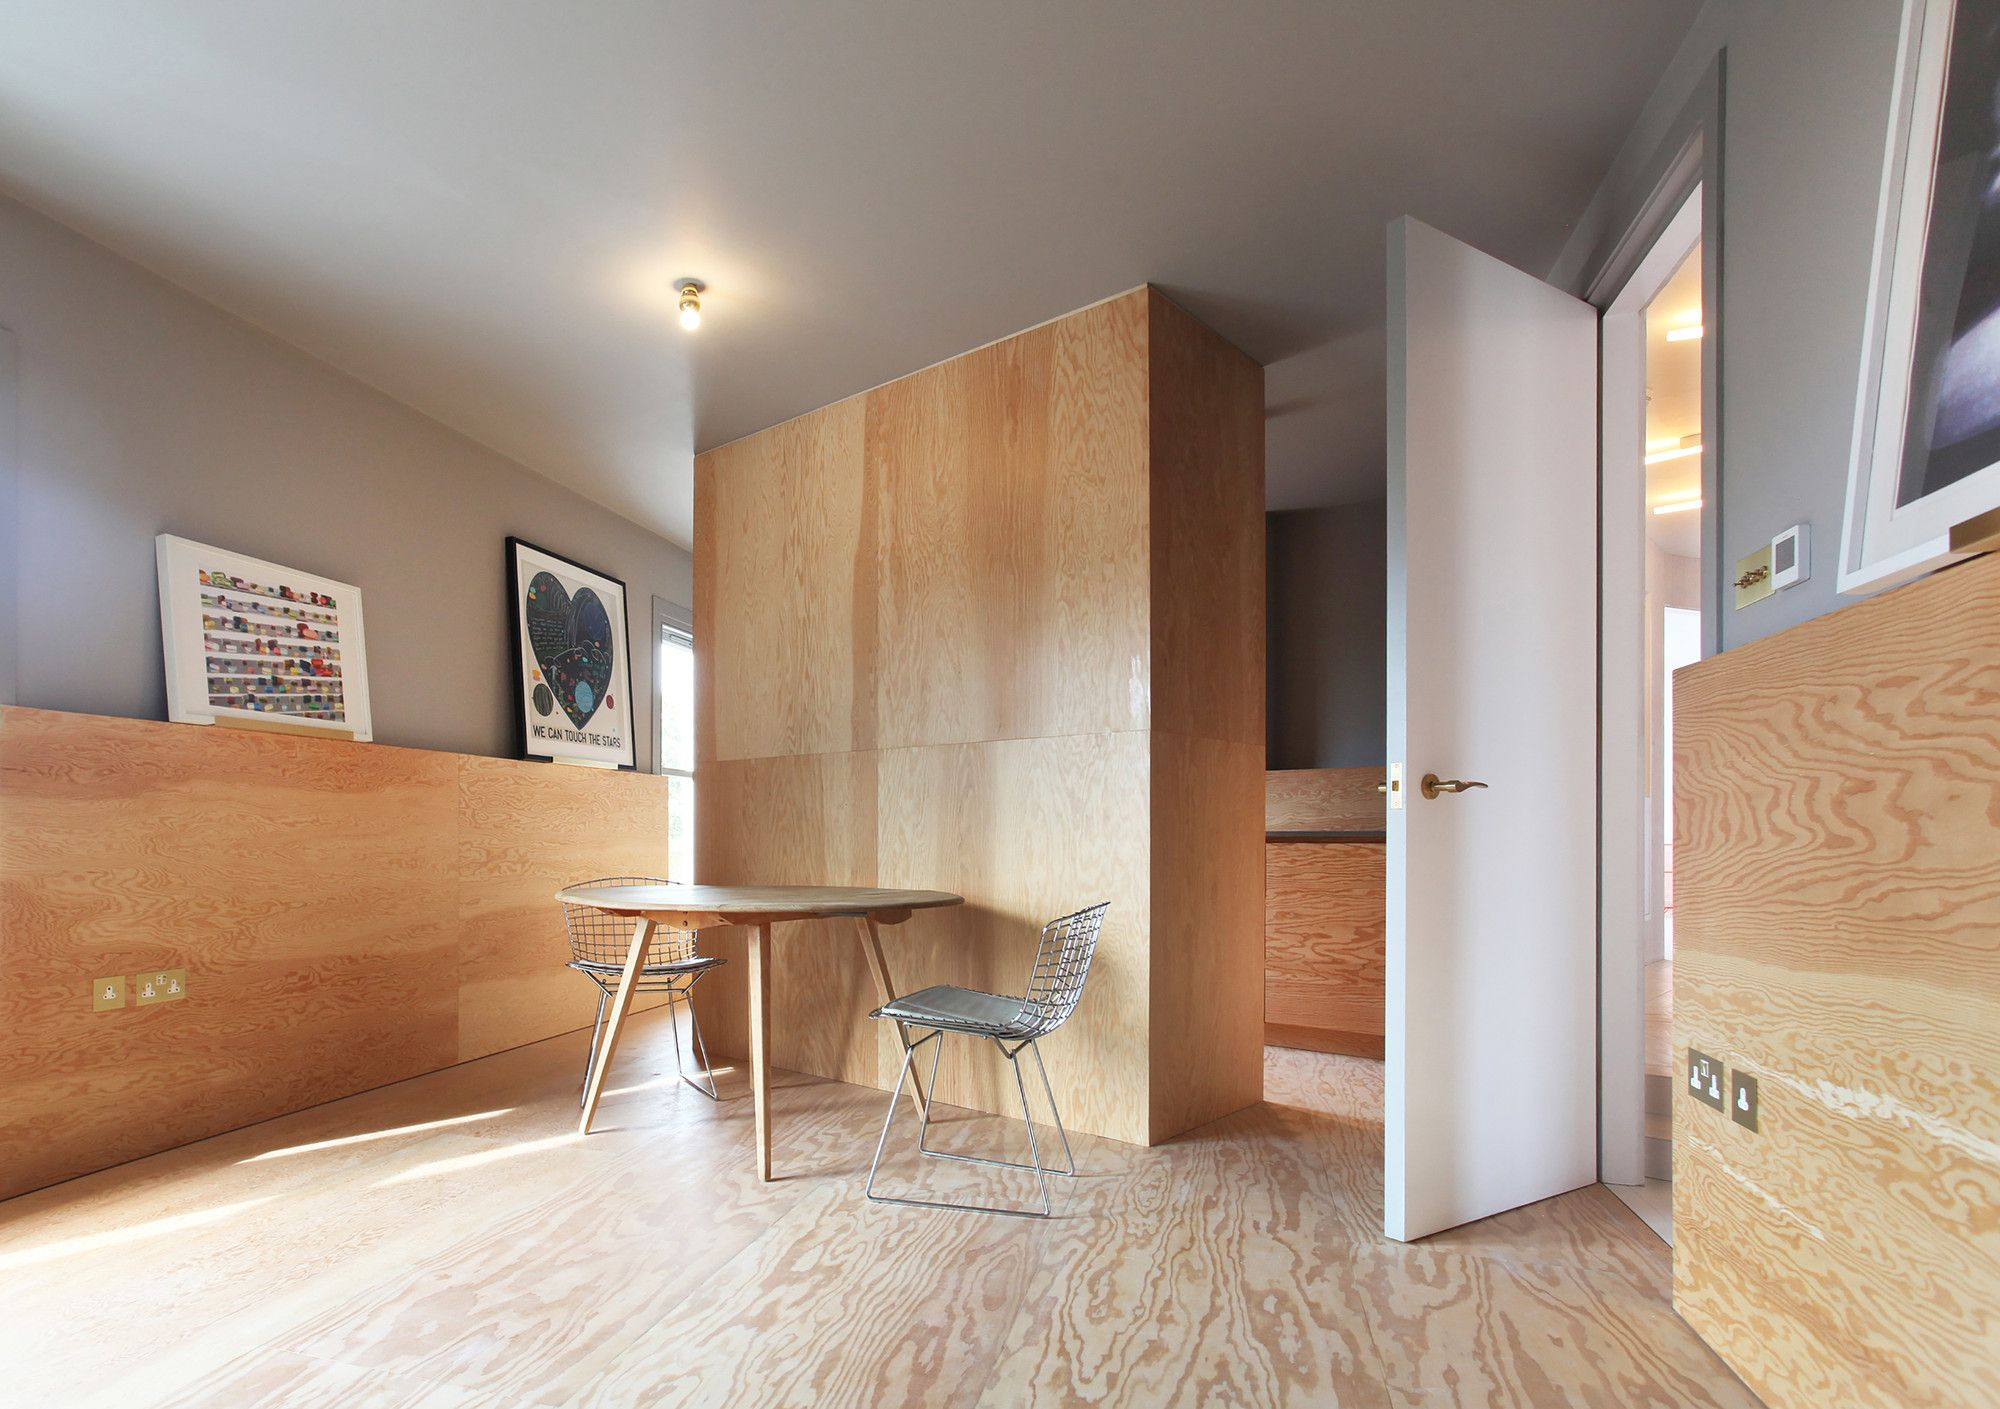 Built by Teatum+Teatum  in Wilson, United States with date 2014. Images by Lyndon Douglas . Sulgrave Road apartments 008 & 009 are two new homes, located in Shepherds Bush, London, formed by extending and ...